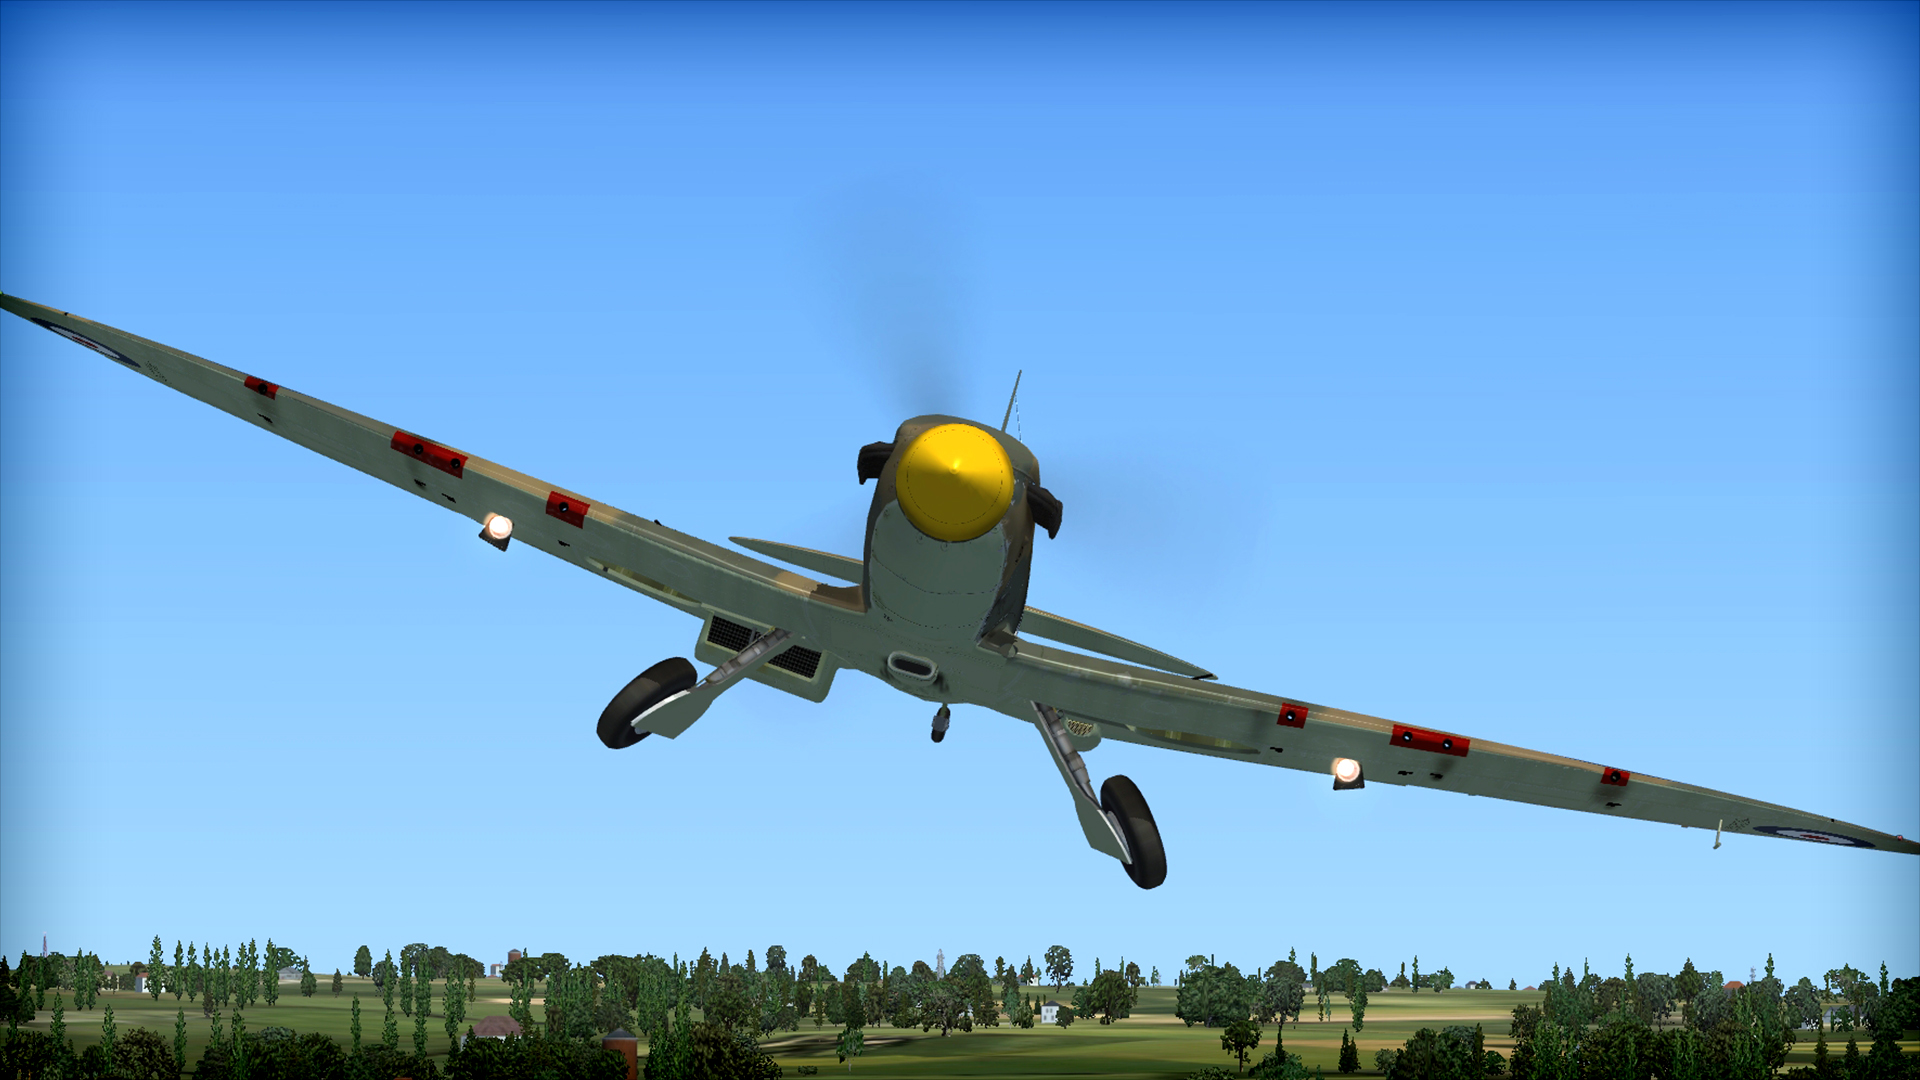 save 50% on fsx: steam edition - battle of britain: spitfire add-on